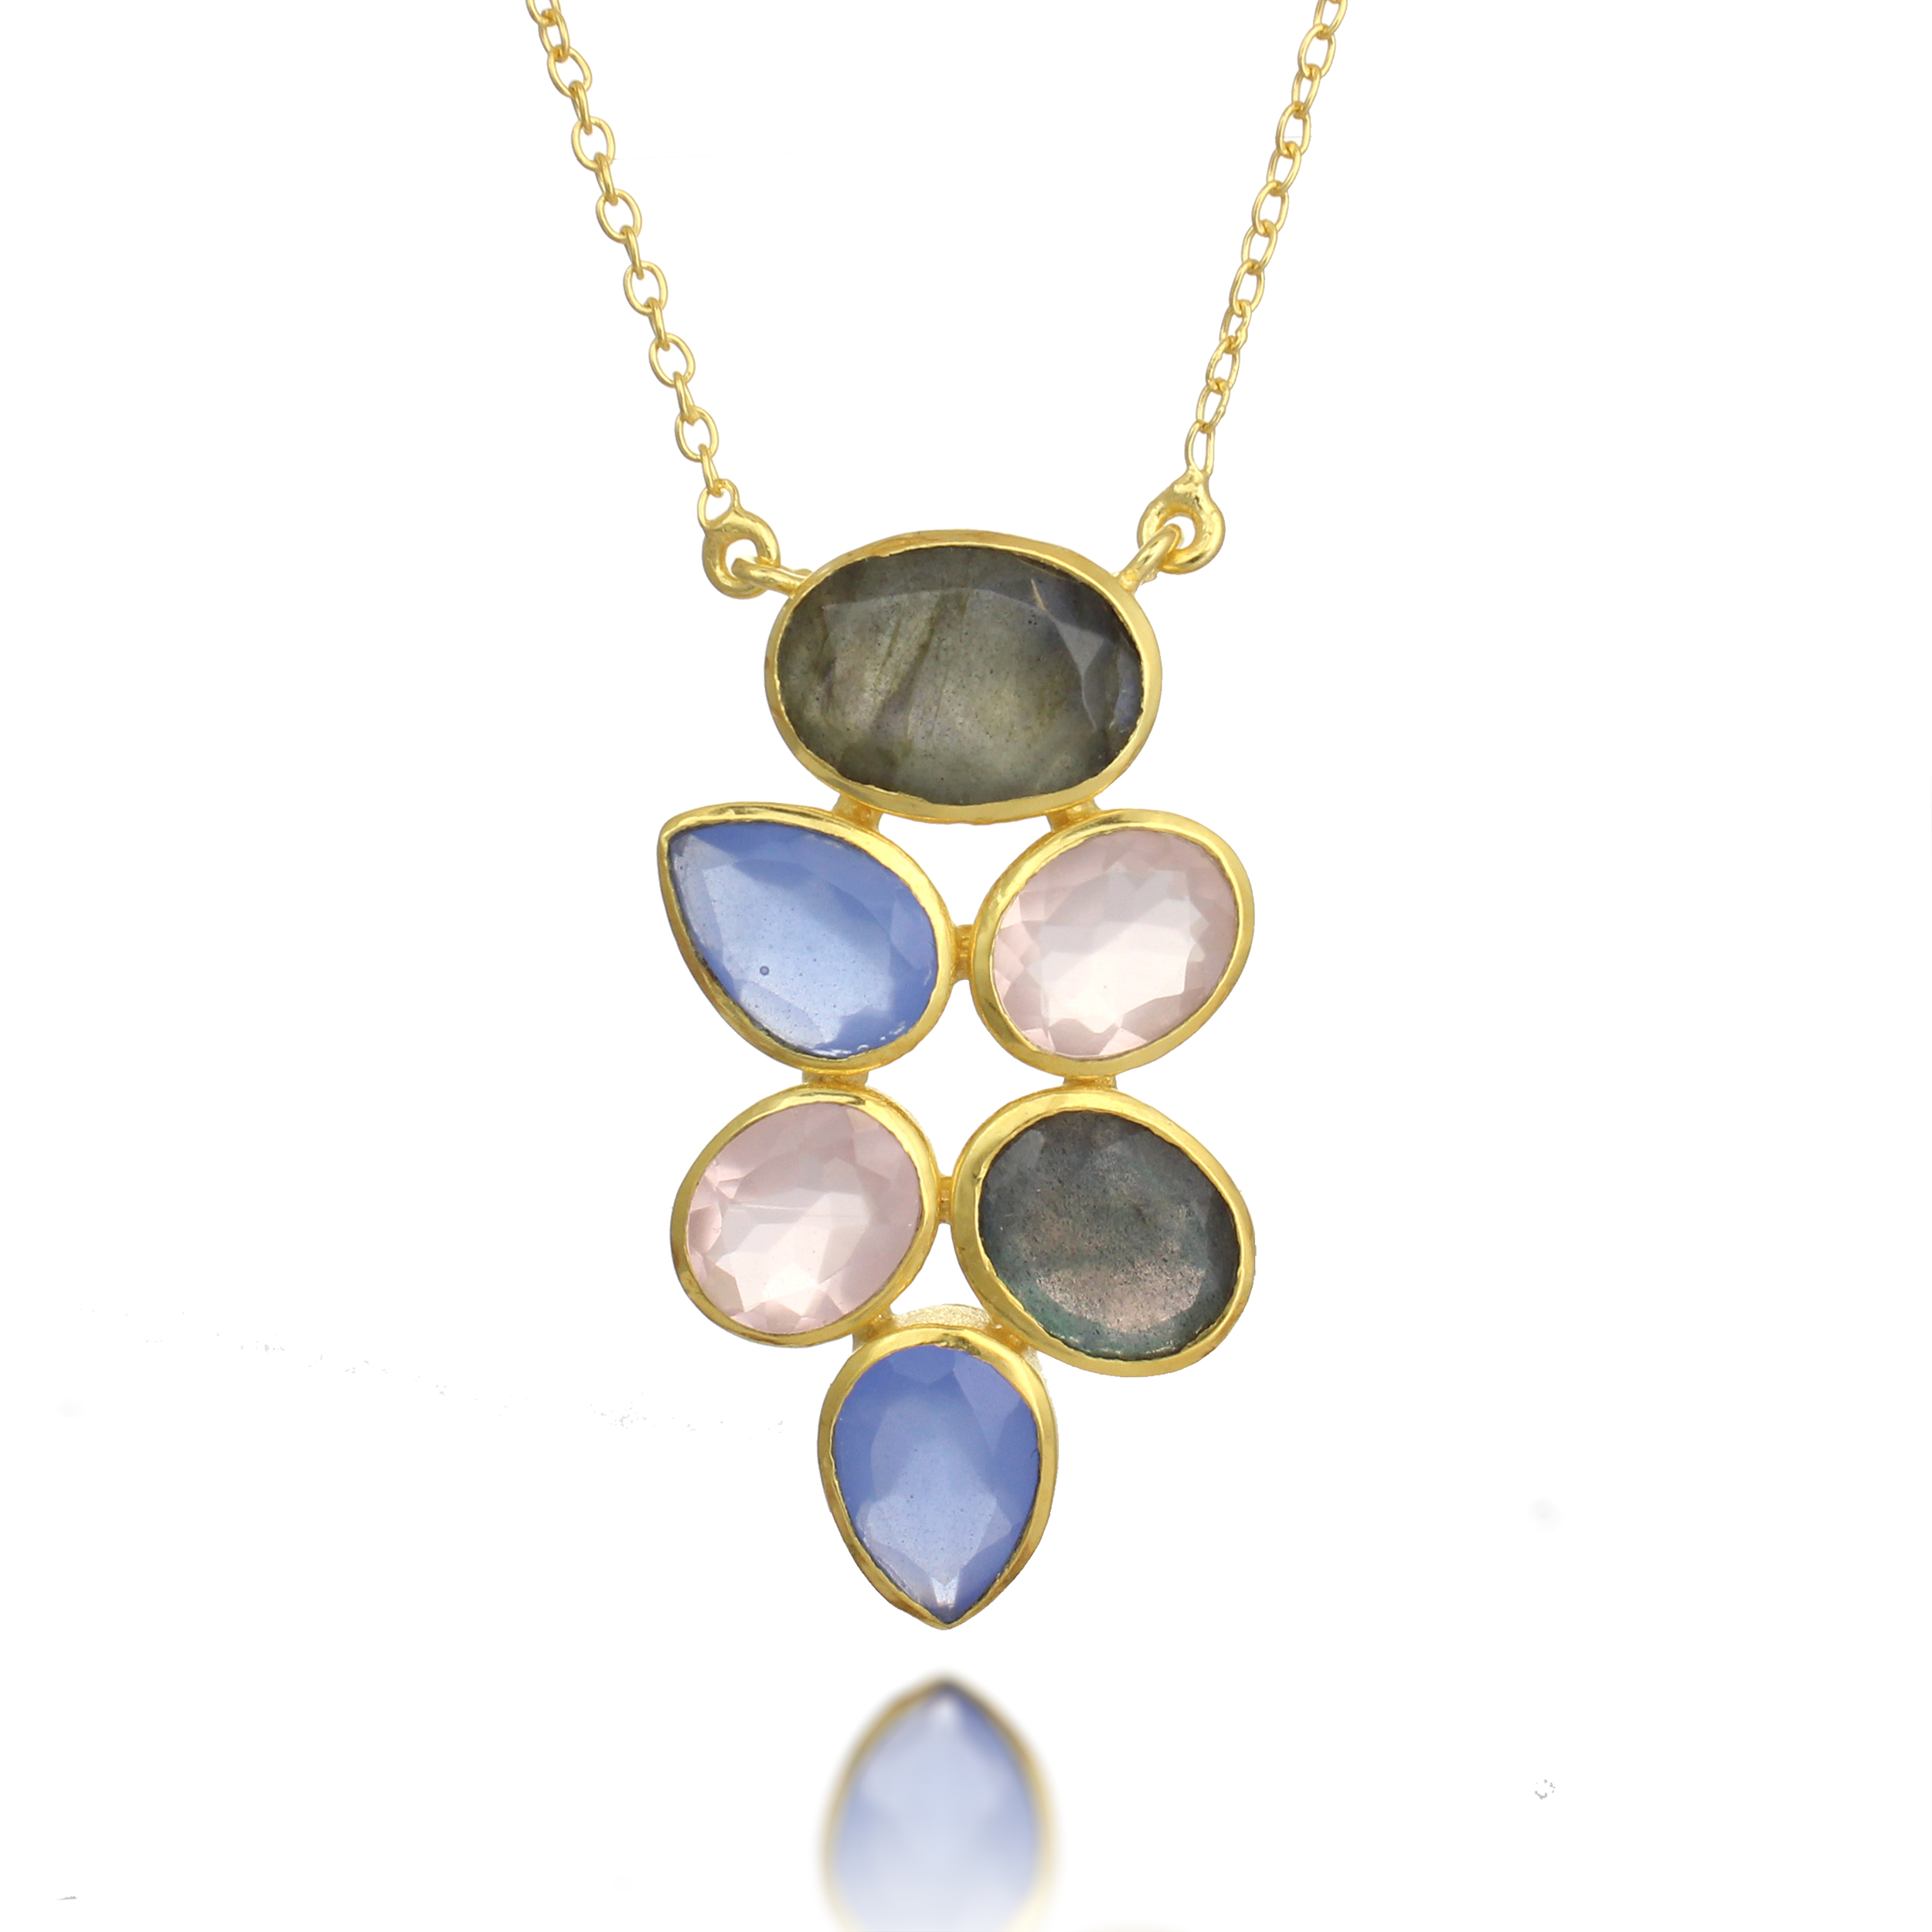 18K Gold-Plated Blue Chalcedony, Labradorite and Rose Quartz Gemstone Pendant Necklace, 18-19 inches